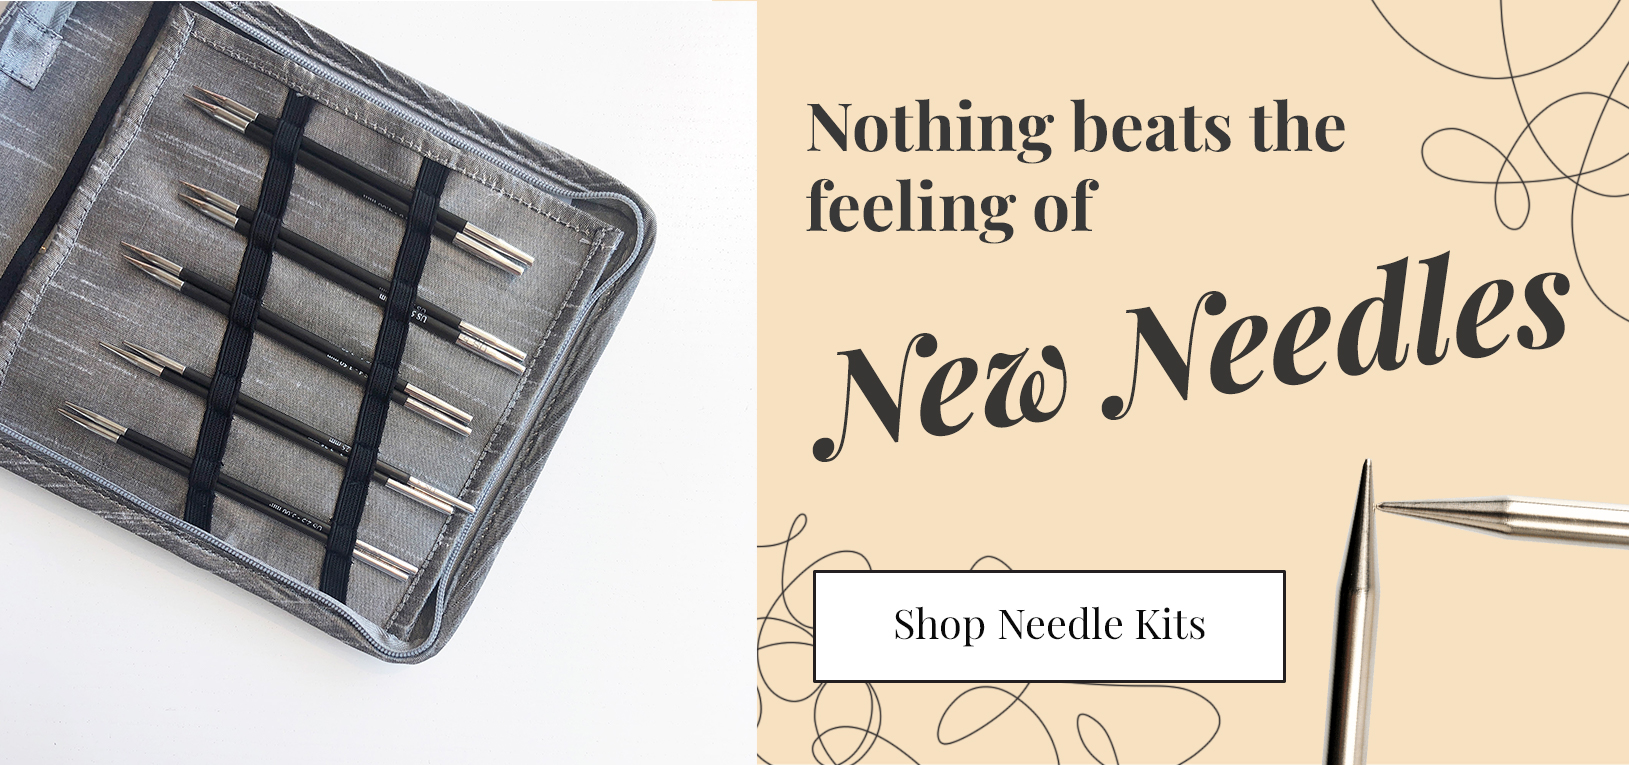 Nothing beats the feeling of New Needles! Shop knitting and crochet needle sets and kits now!